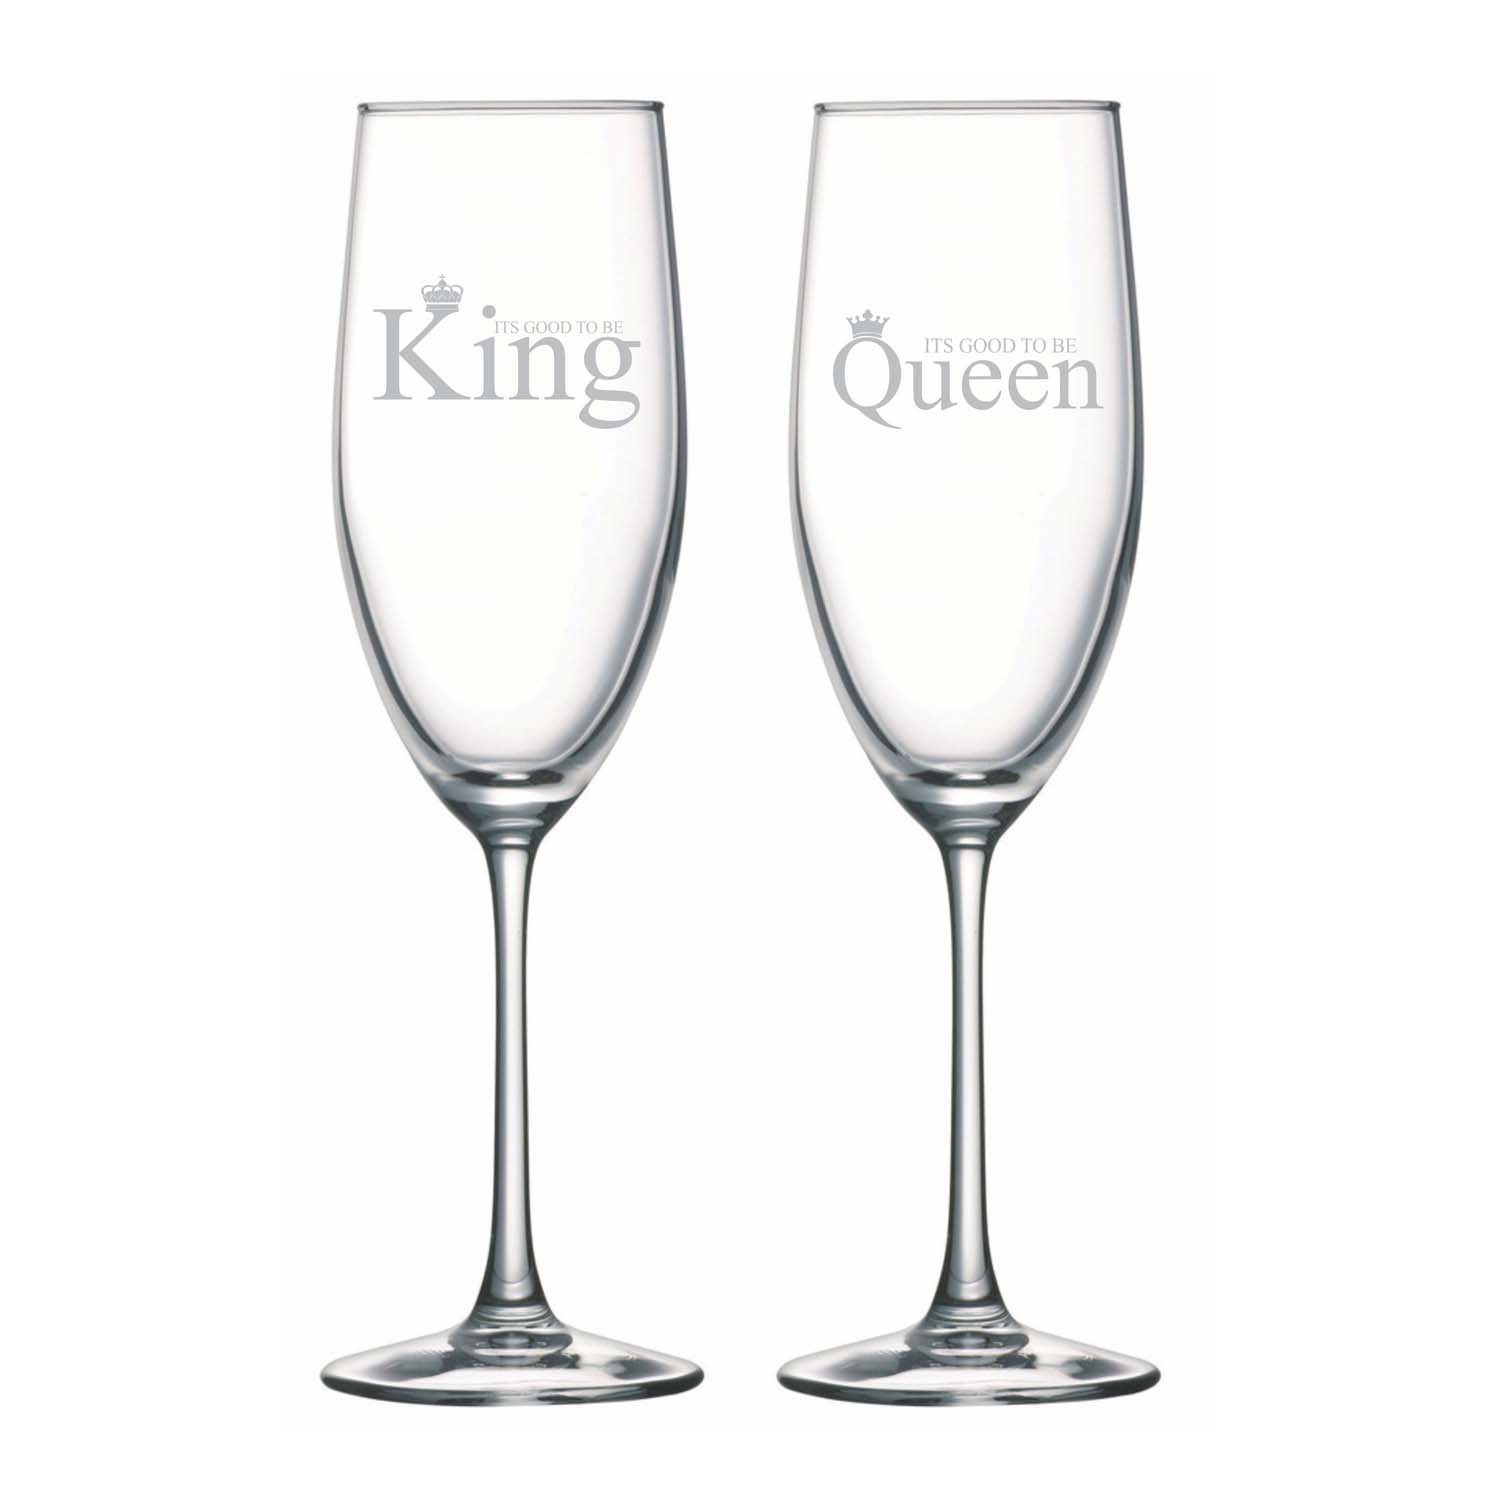 crystal vase engraved gift of king and queen couple engraved champagne flutes with coasters intended for king and queen couple engraved champagne flutes